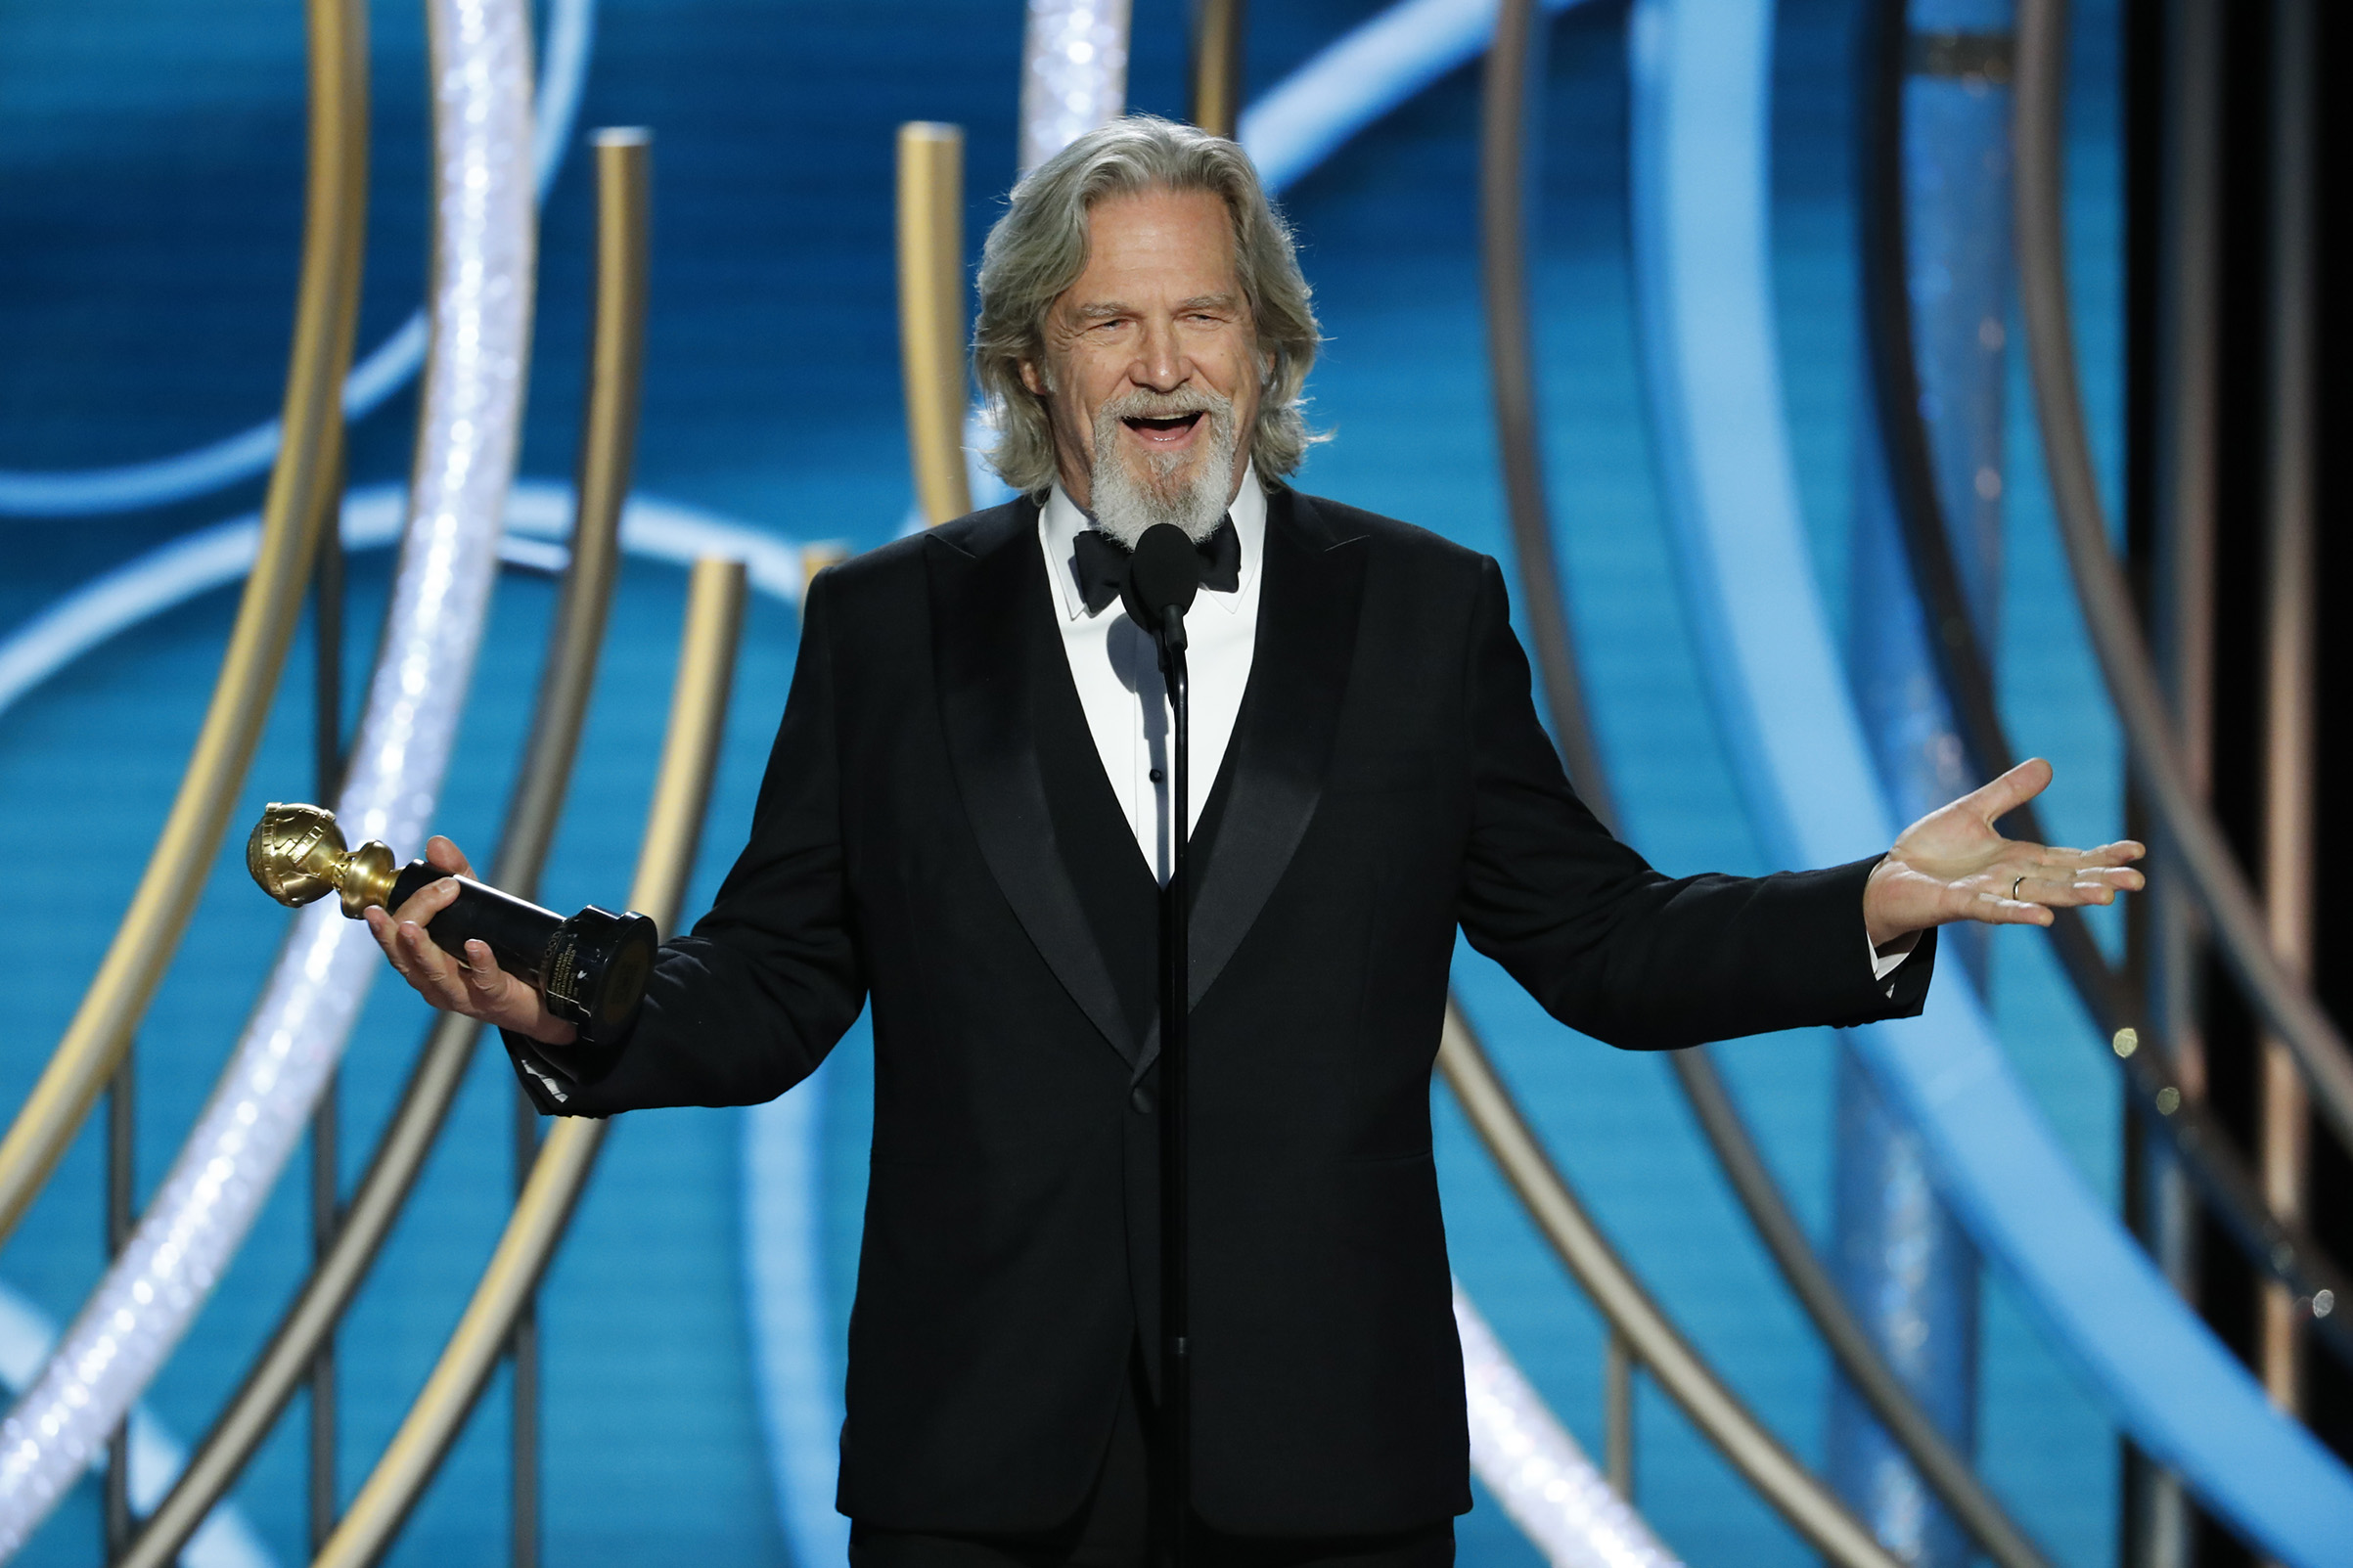 Jeff Bridges accepts the Cecil B. Demille Award onstage during the 76th Annual Golden Globe Awards.